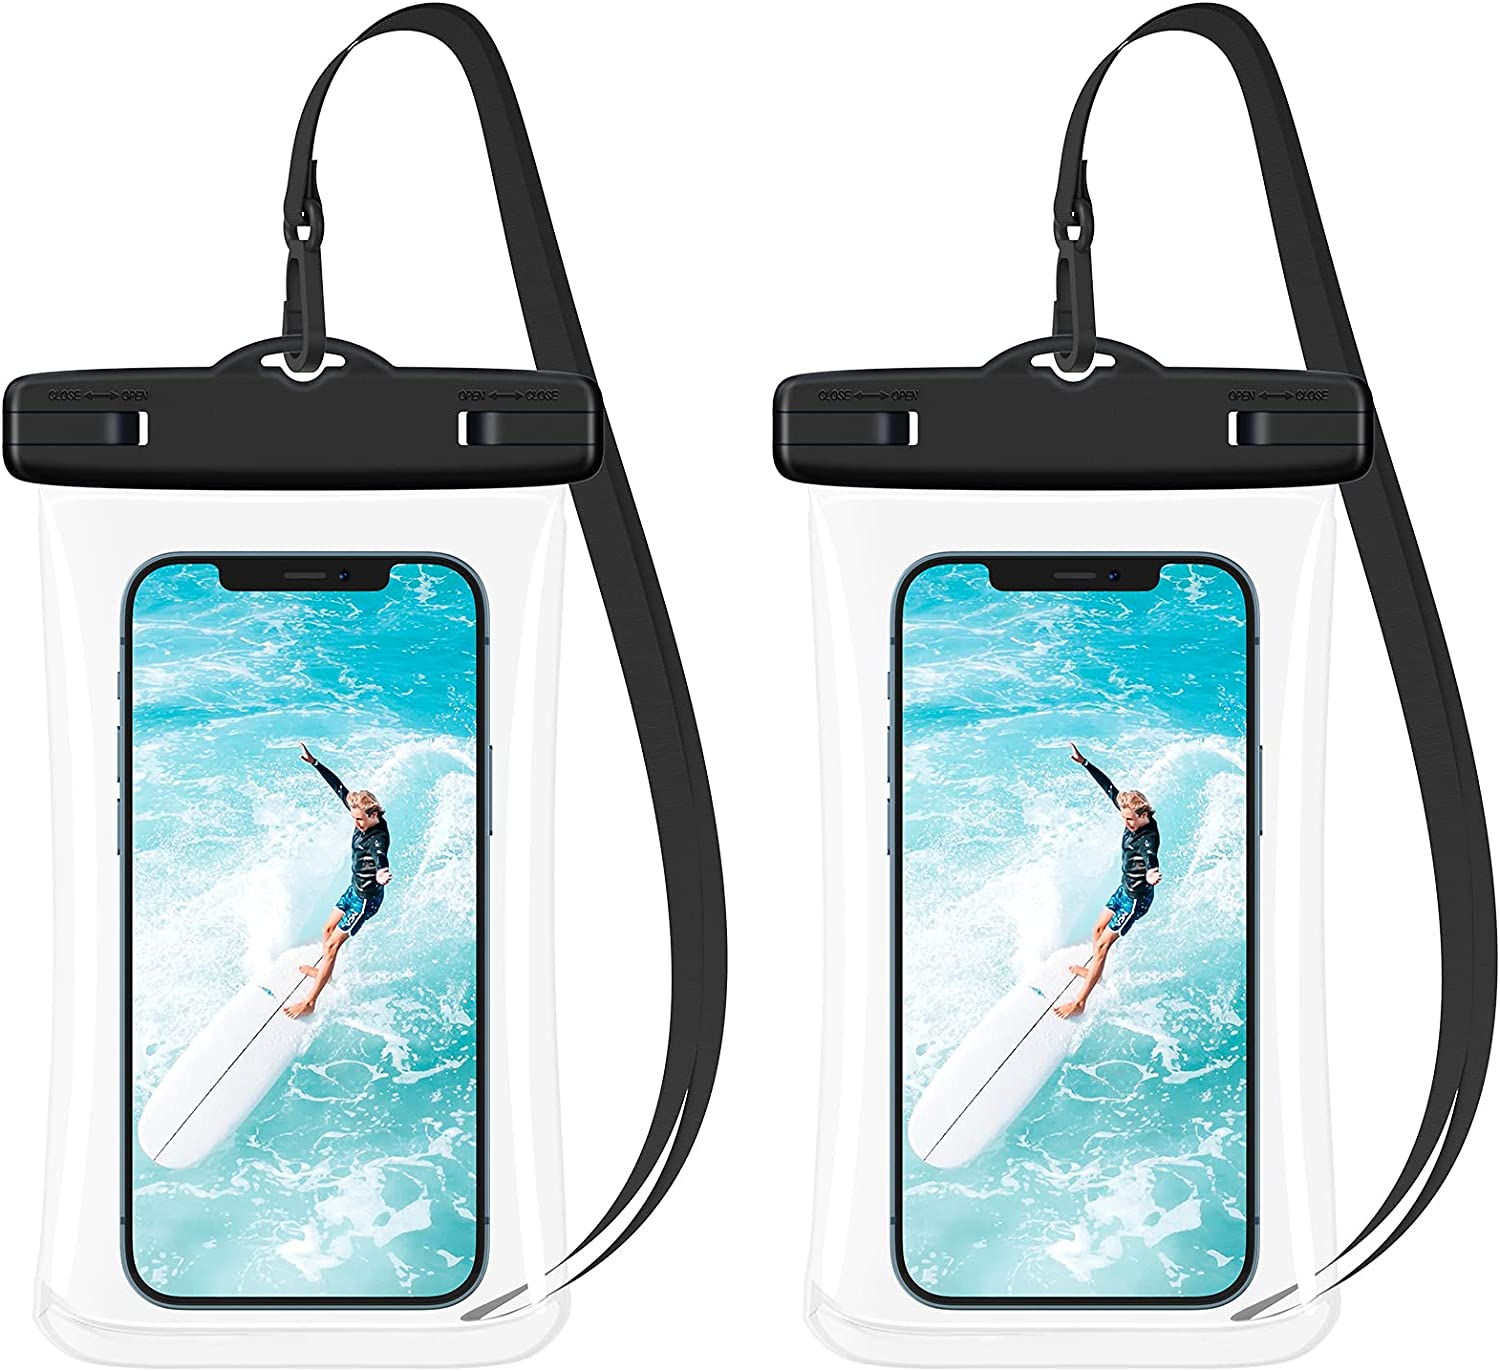 Ruky Universal Waterproof Phone Pouch, [2 Pack] Waterproof Phone Case Underwater Dry Bag for iPhone 12 Pro Max SE 11 Pro Max XS Max XR X 8 7 Plus Galaxy S21 S20 FE Google OnePlus Up to 7